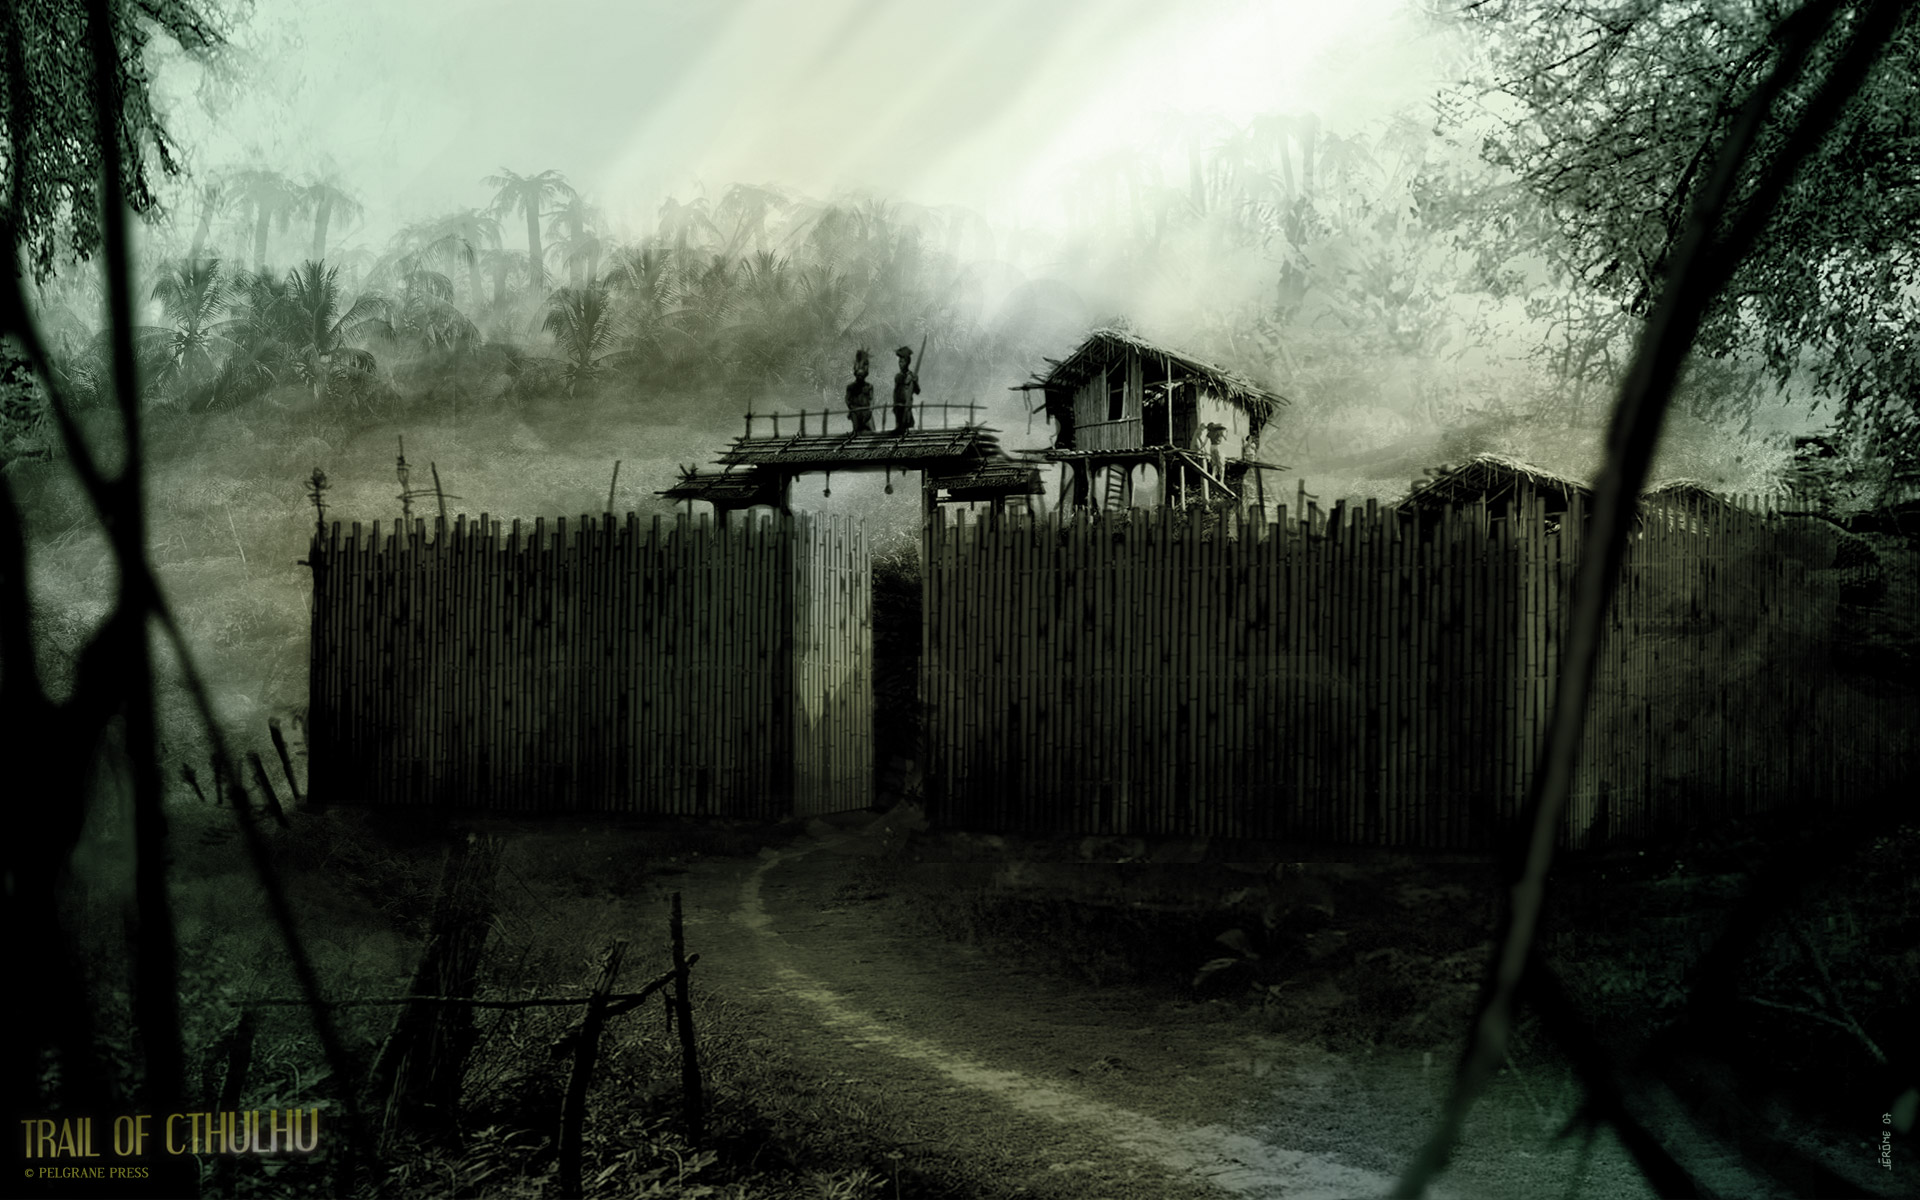 Free Downloads and Resources for Trail of Cthulhu